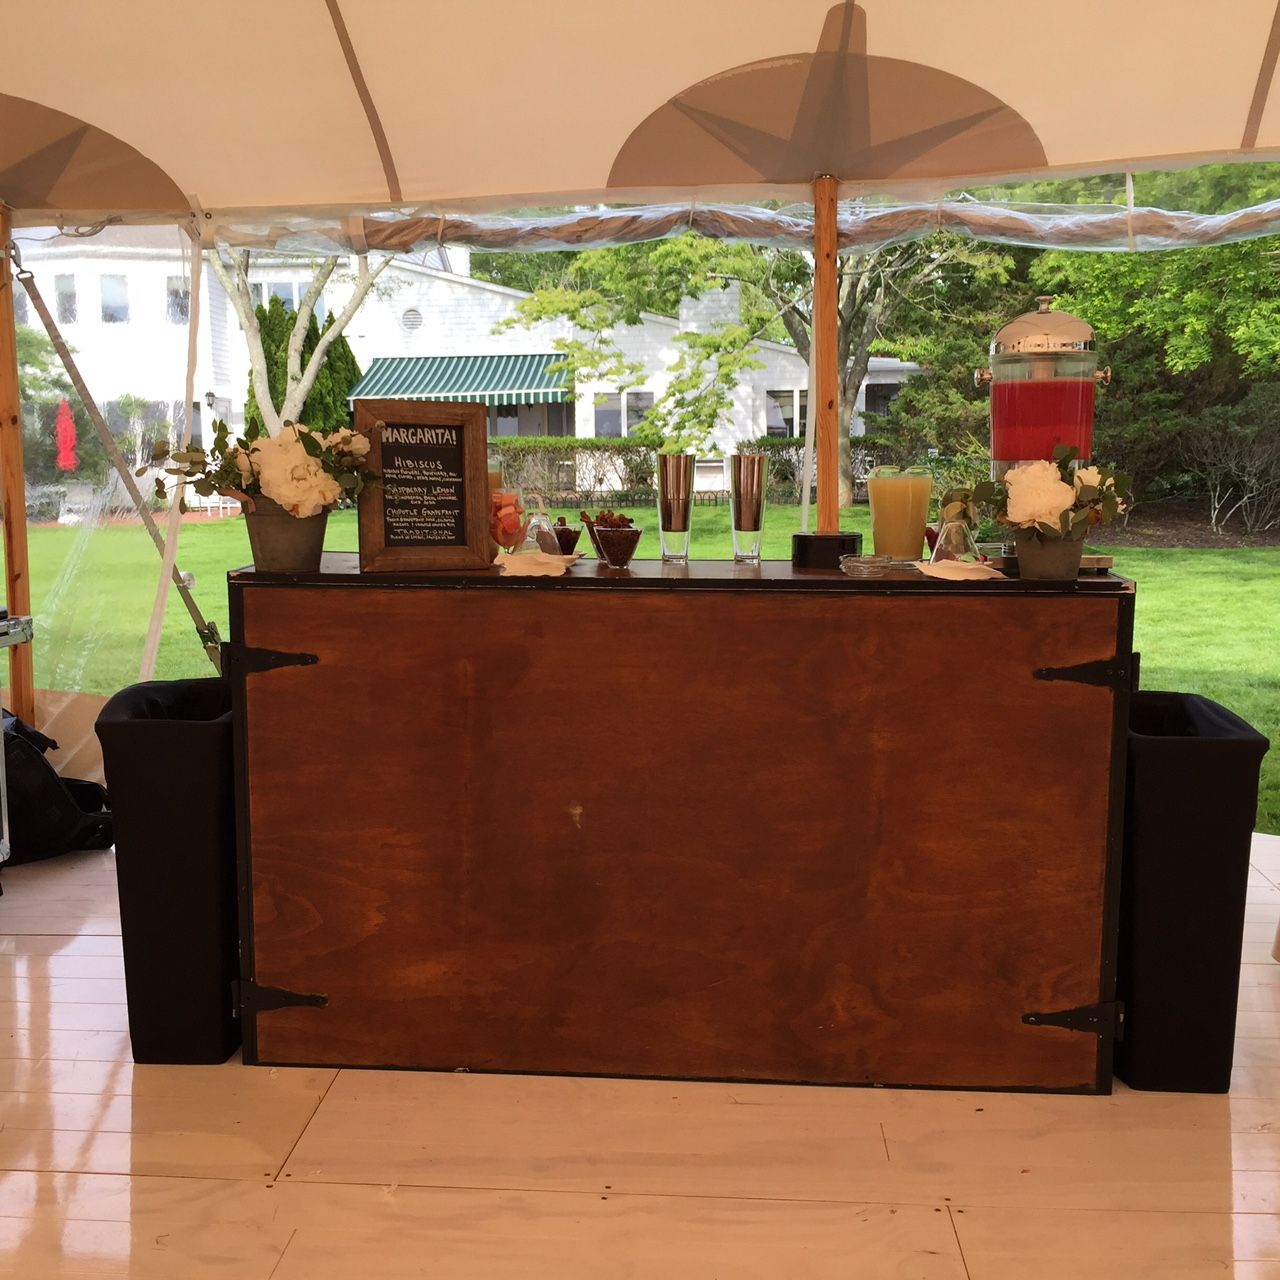 Party Rental Ltd. Drinks!!! from our Portable Farm House